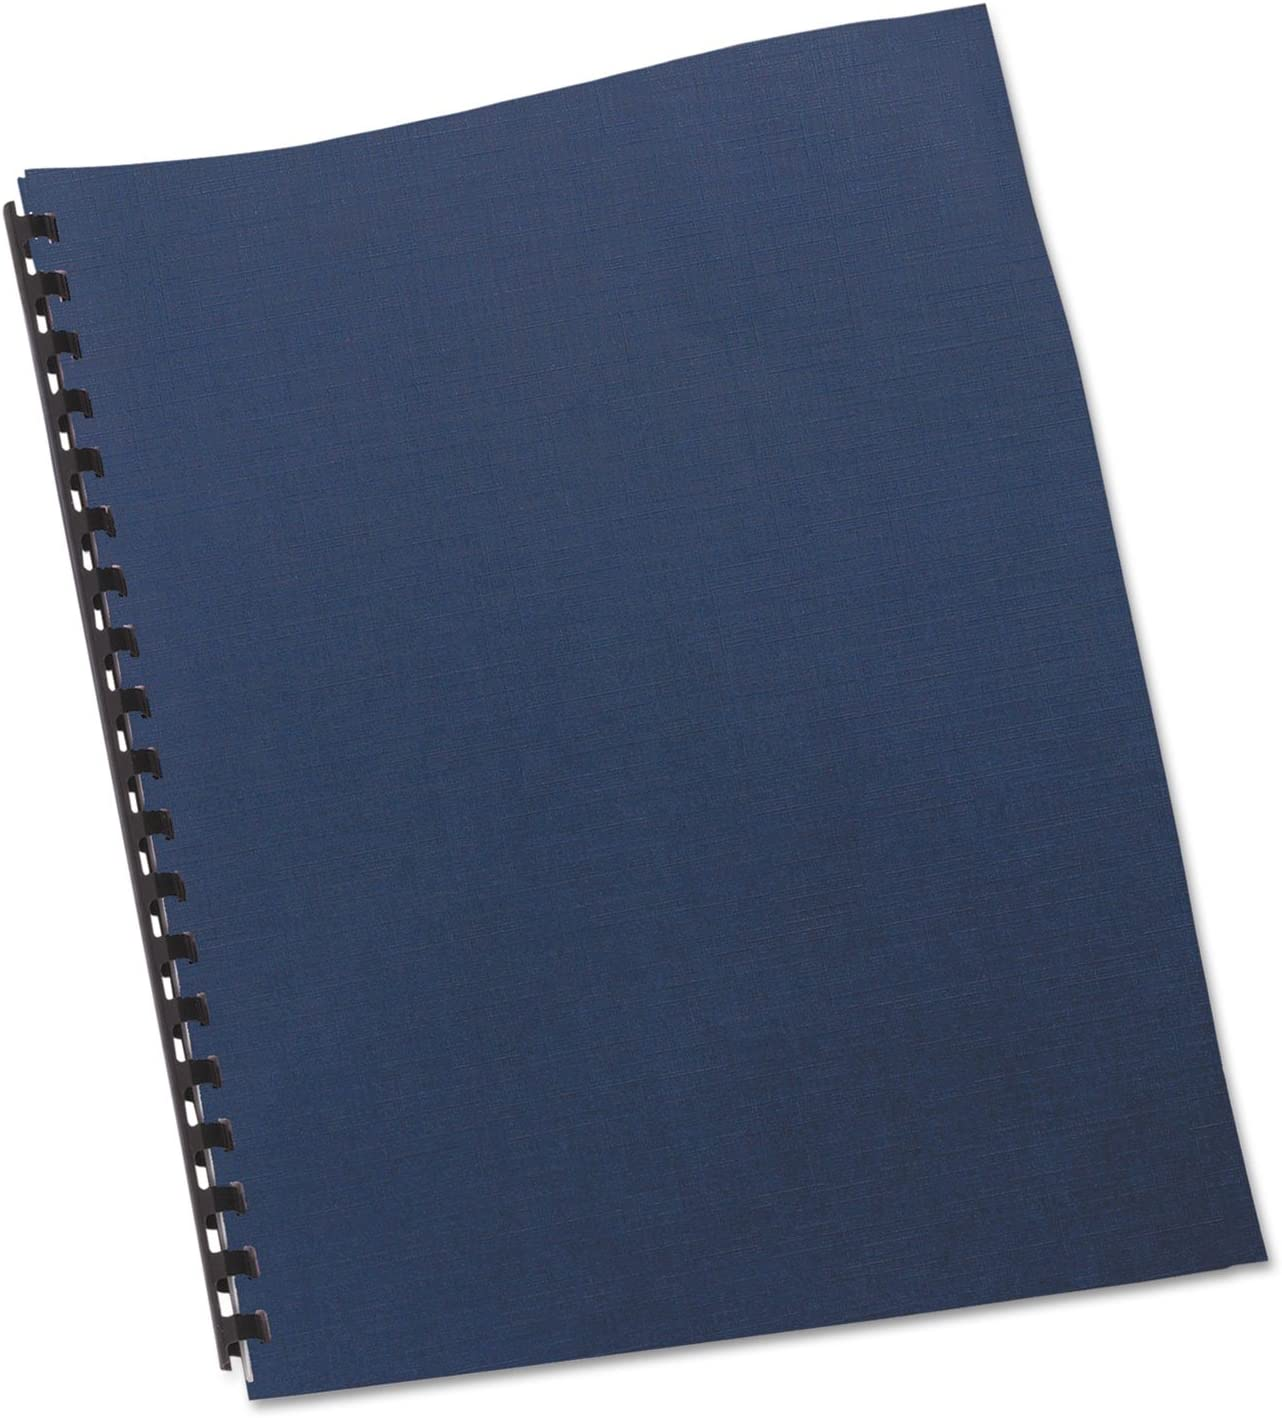 SWI9742450 - Very popular Linen Textured Covers System Binding Our shop OFFers the best service